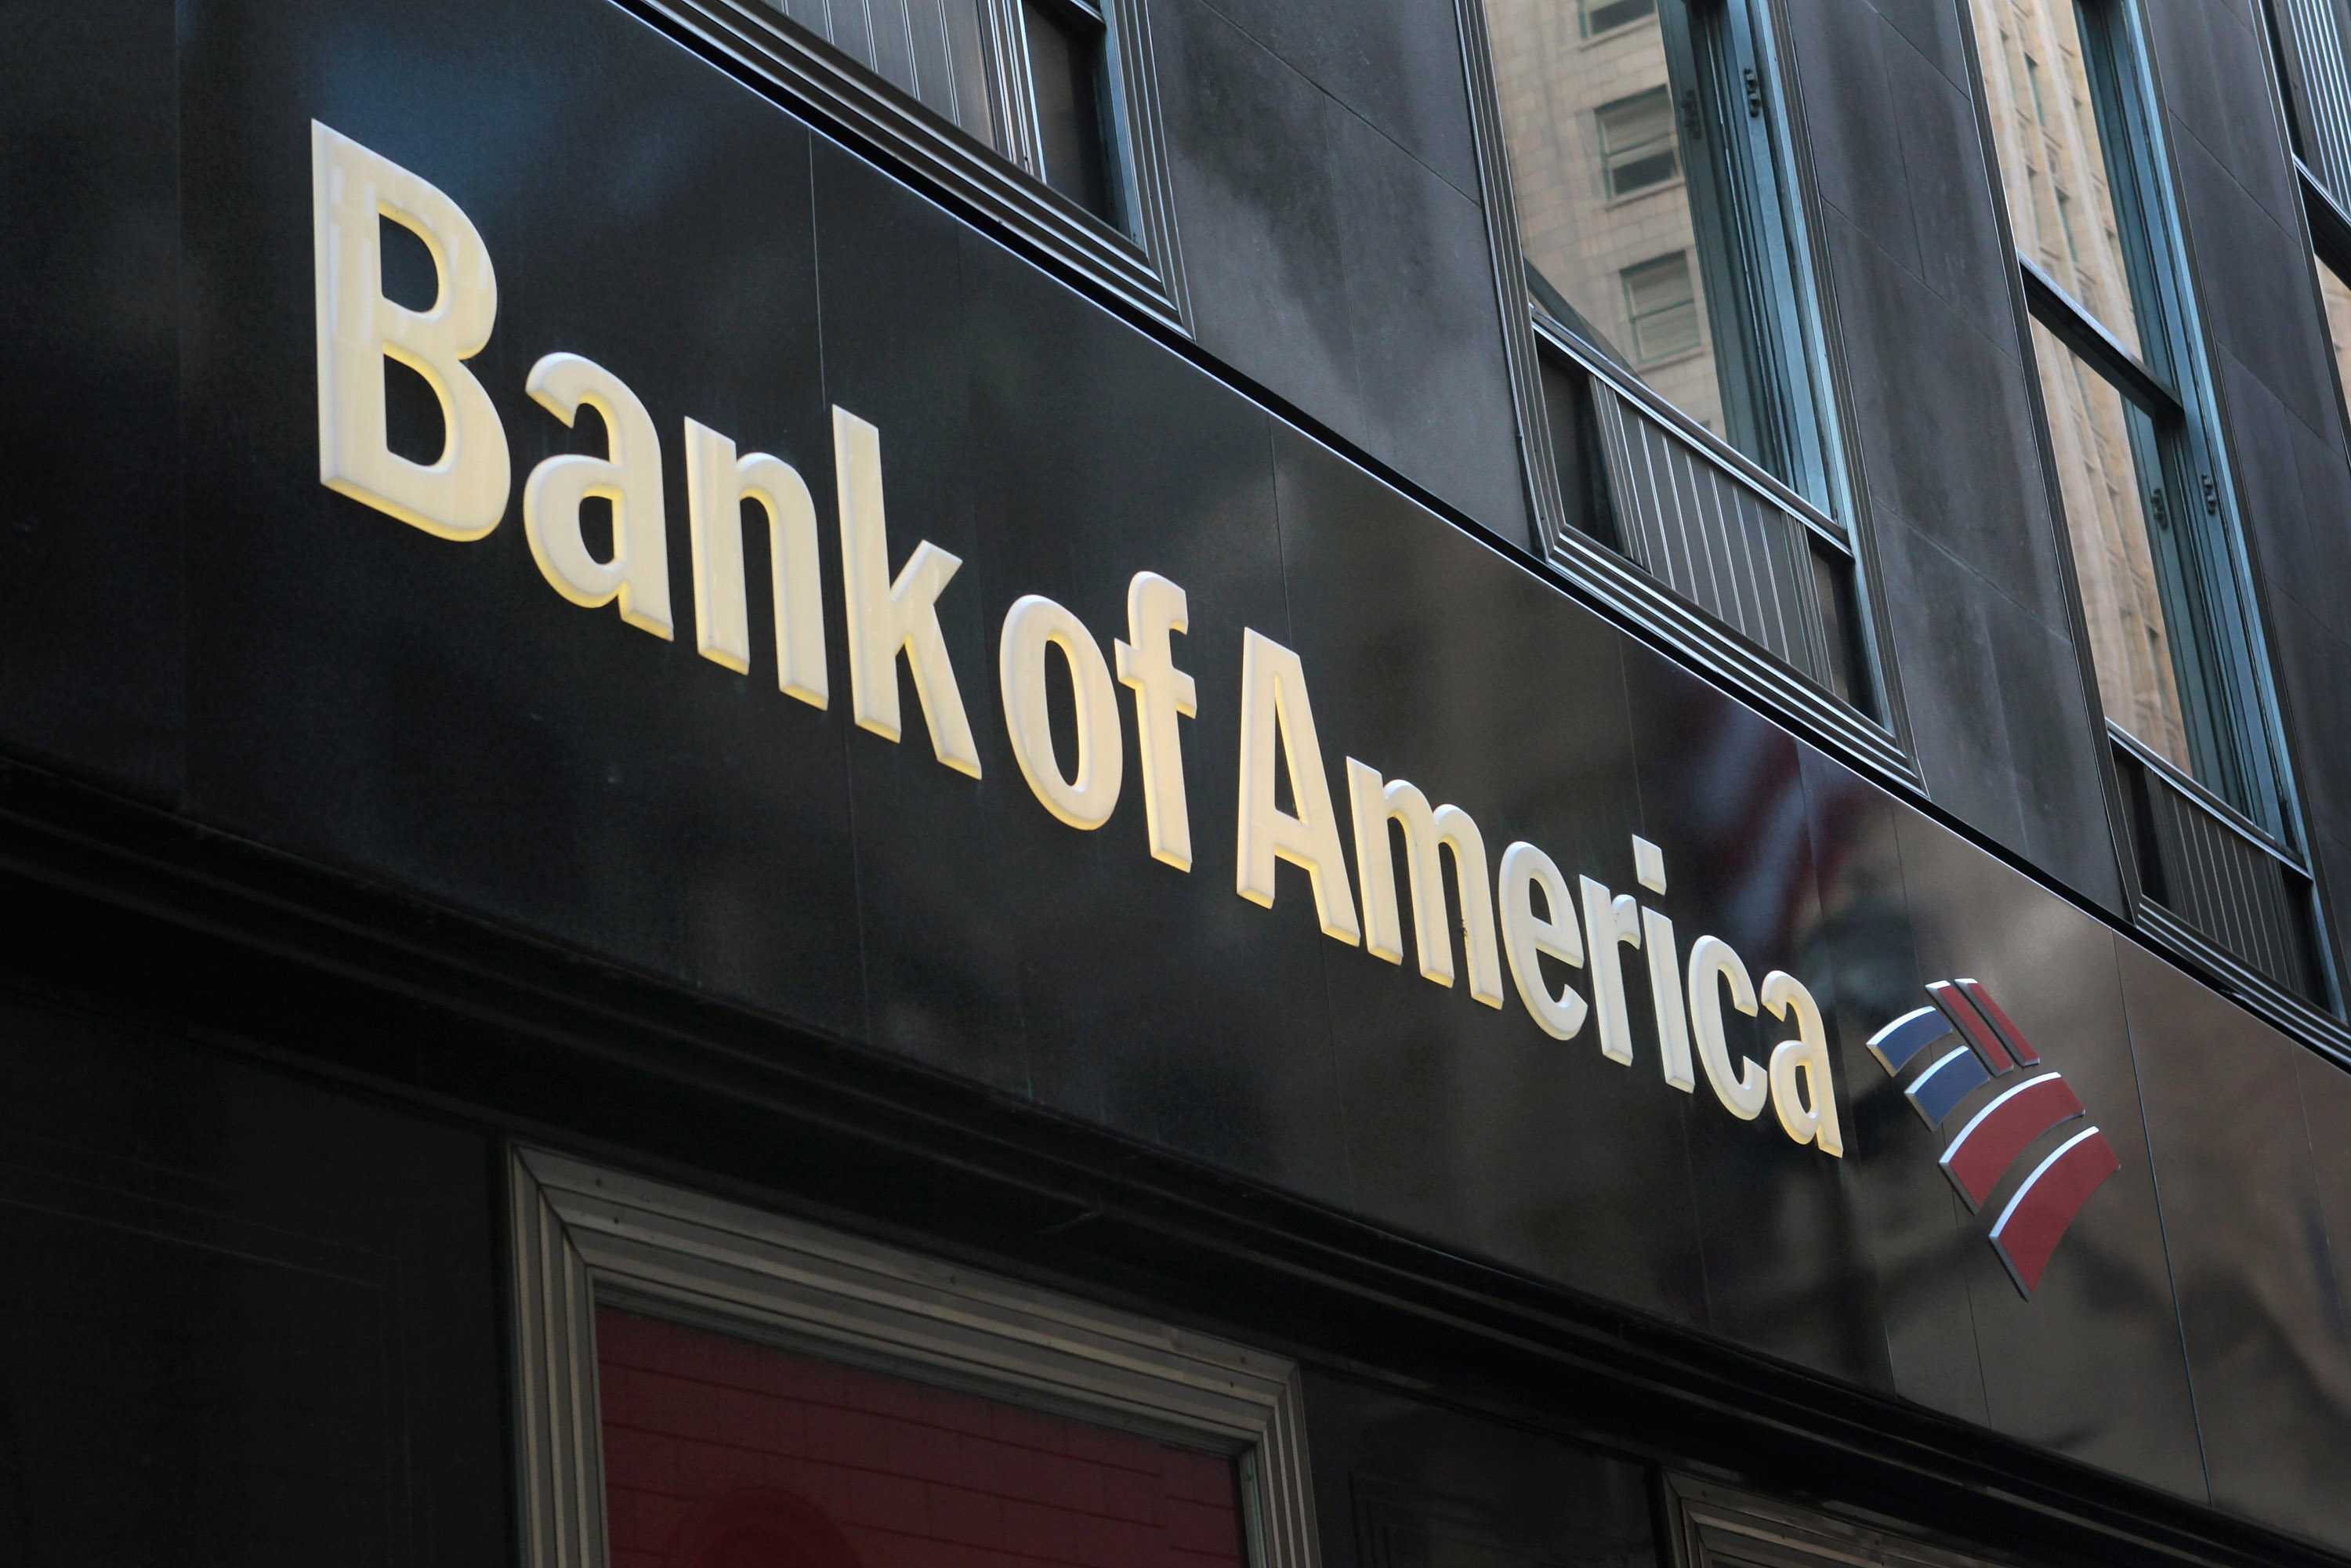 bank of america bank , bank of america saturday hours